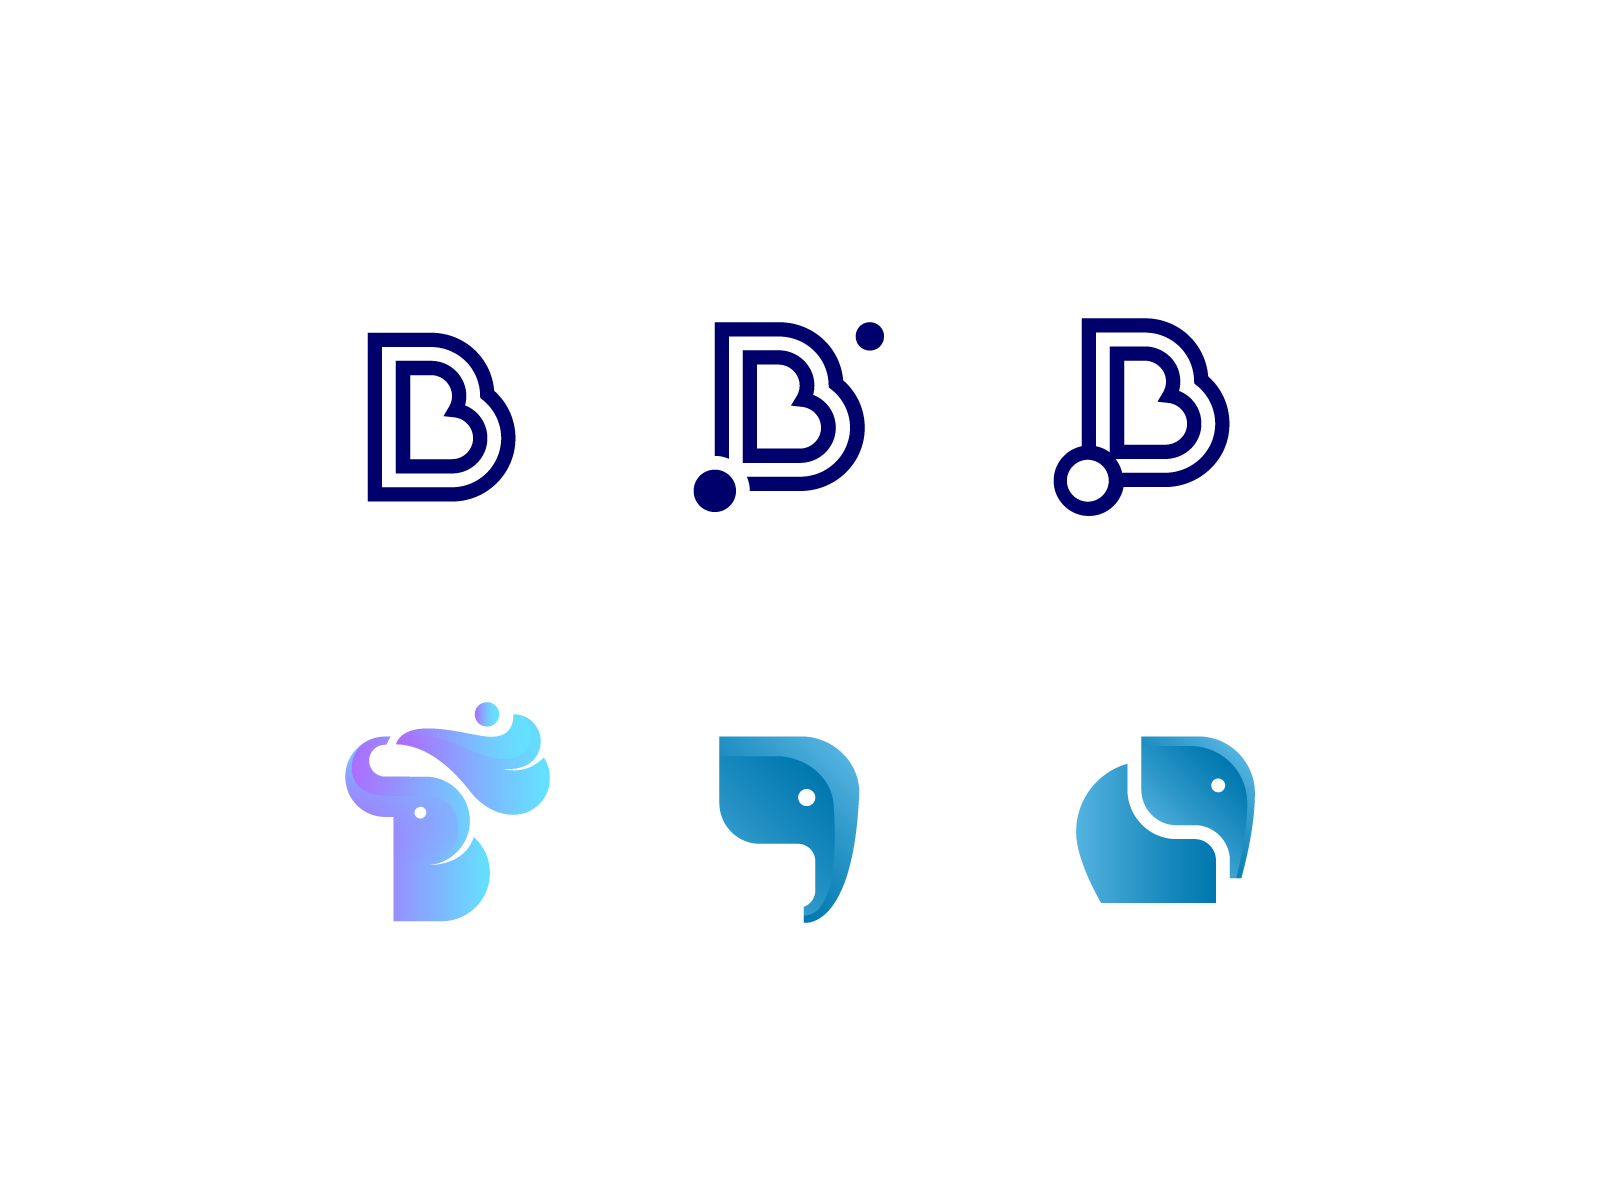 B letter and mascot concepts